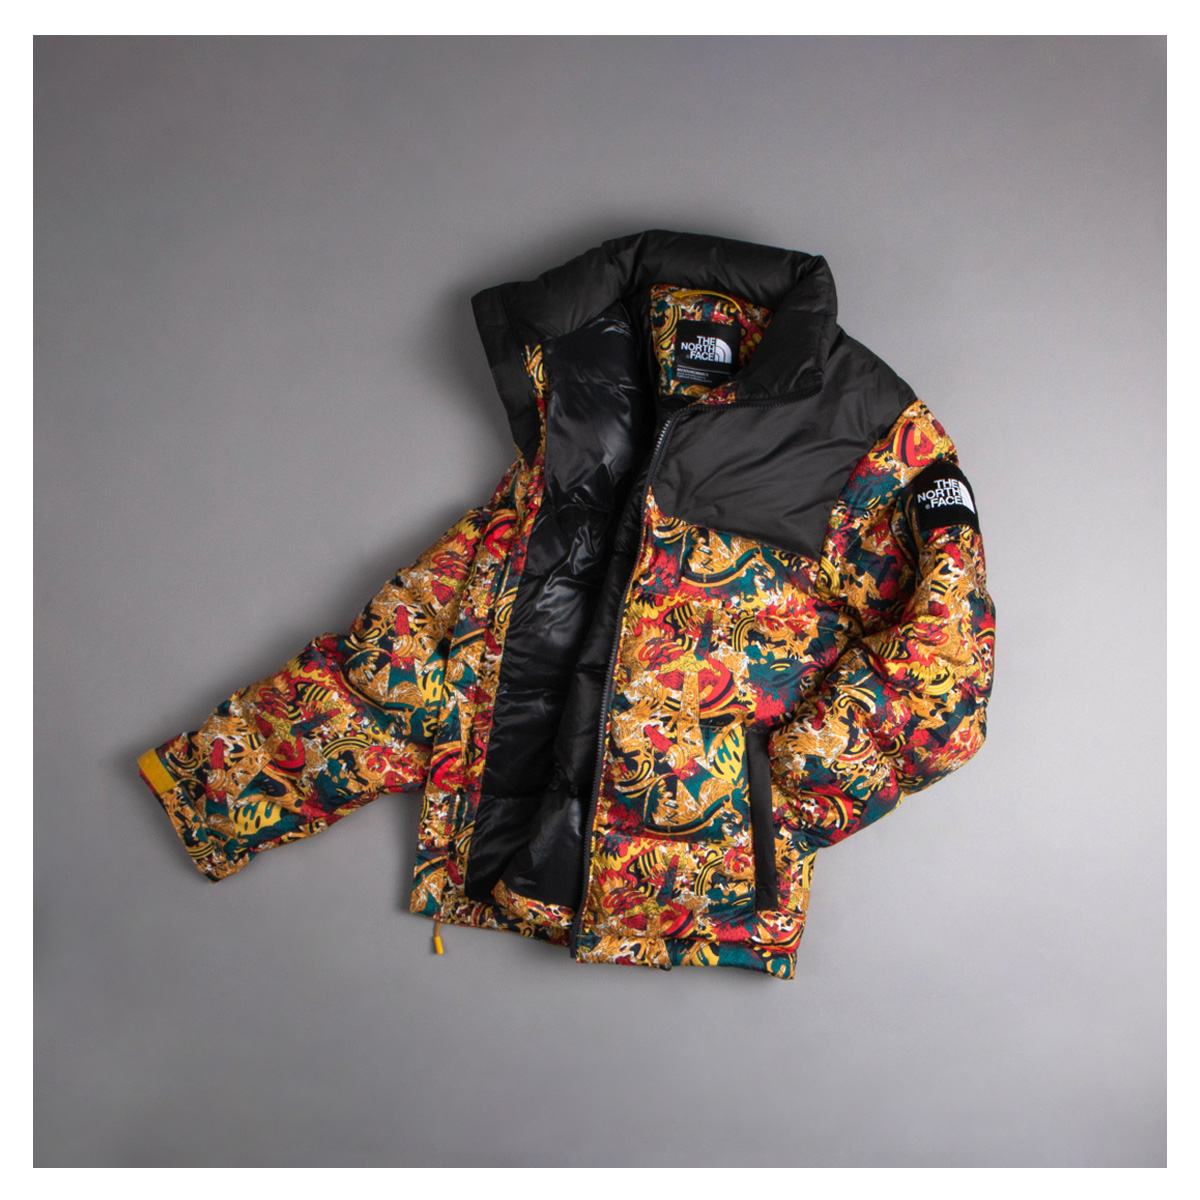 A North Face Coat In Bright Floral Patterns